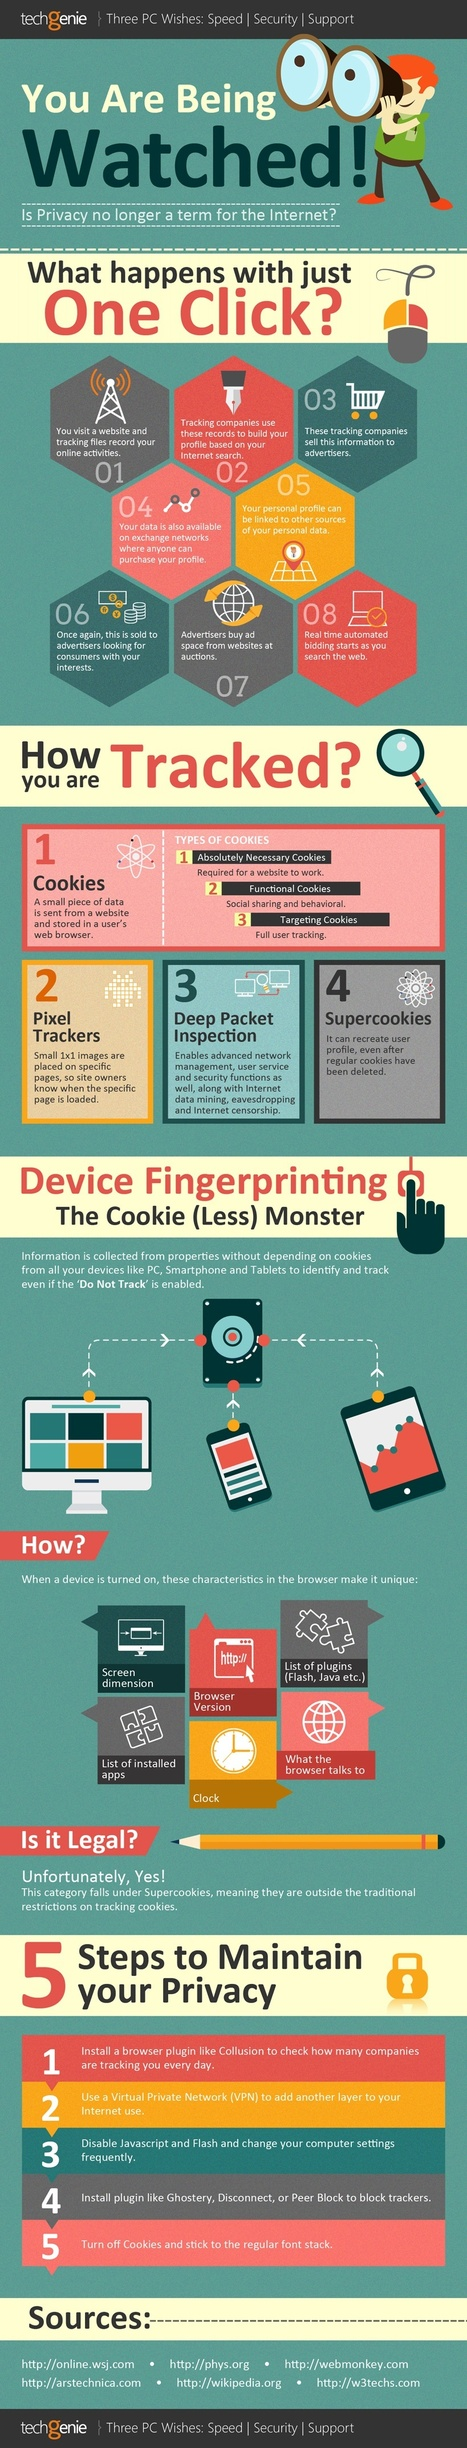 You're Being Watched Online [Infographic] | Teachers | Scoop.it